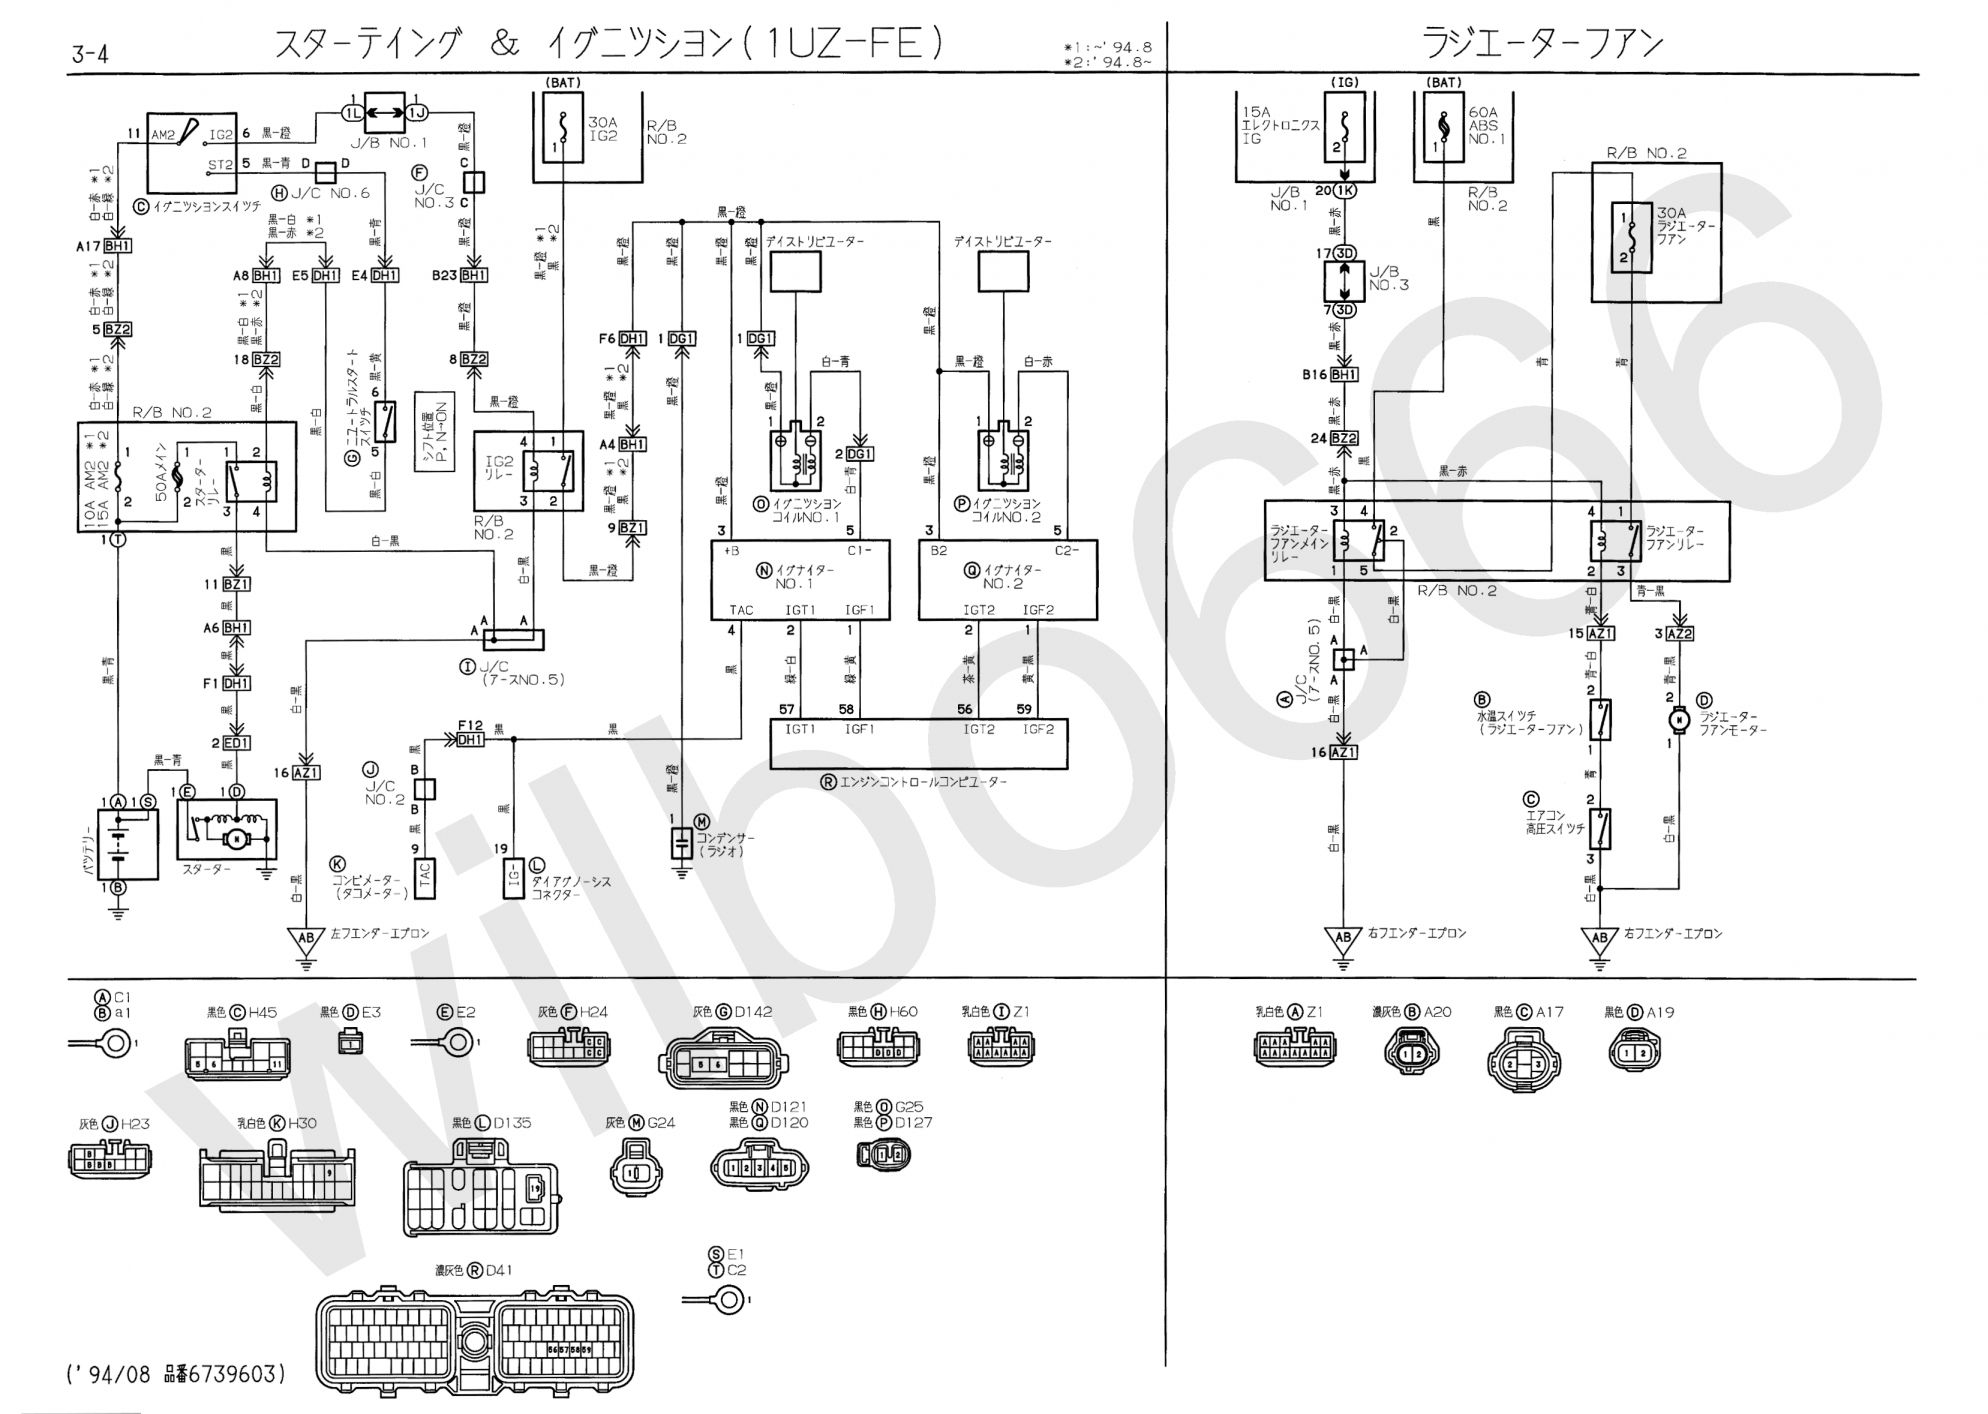 2002 Saab 9 5 Electrical Shop Manual Wiring Diagrams Original Schematic Book 95 Hargeisait Com